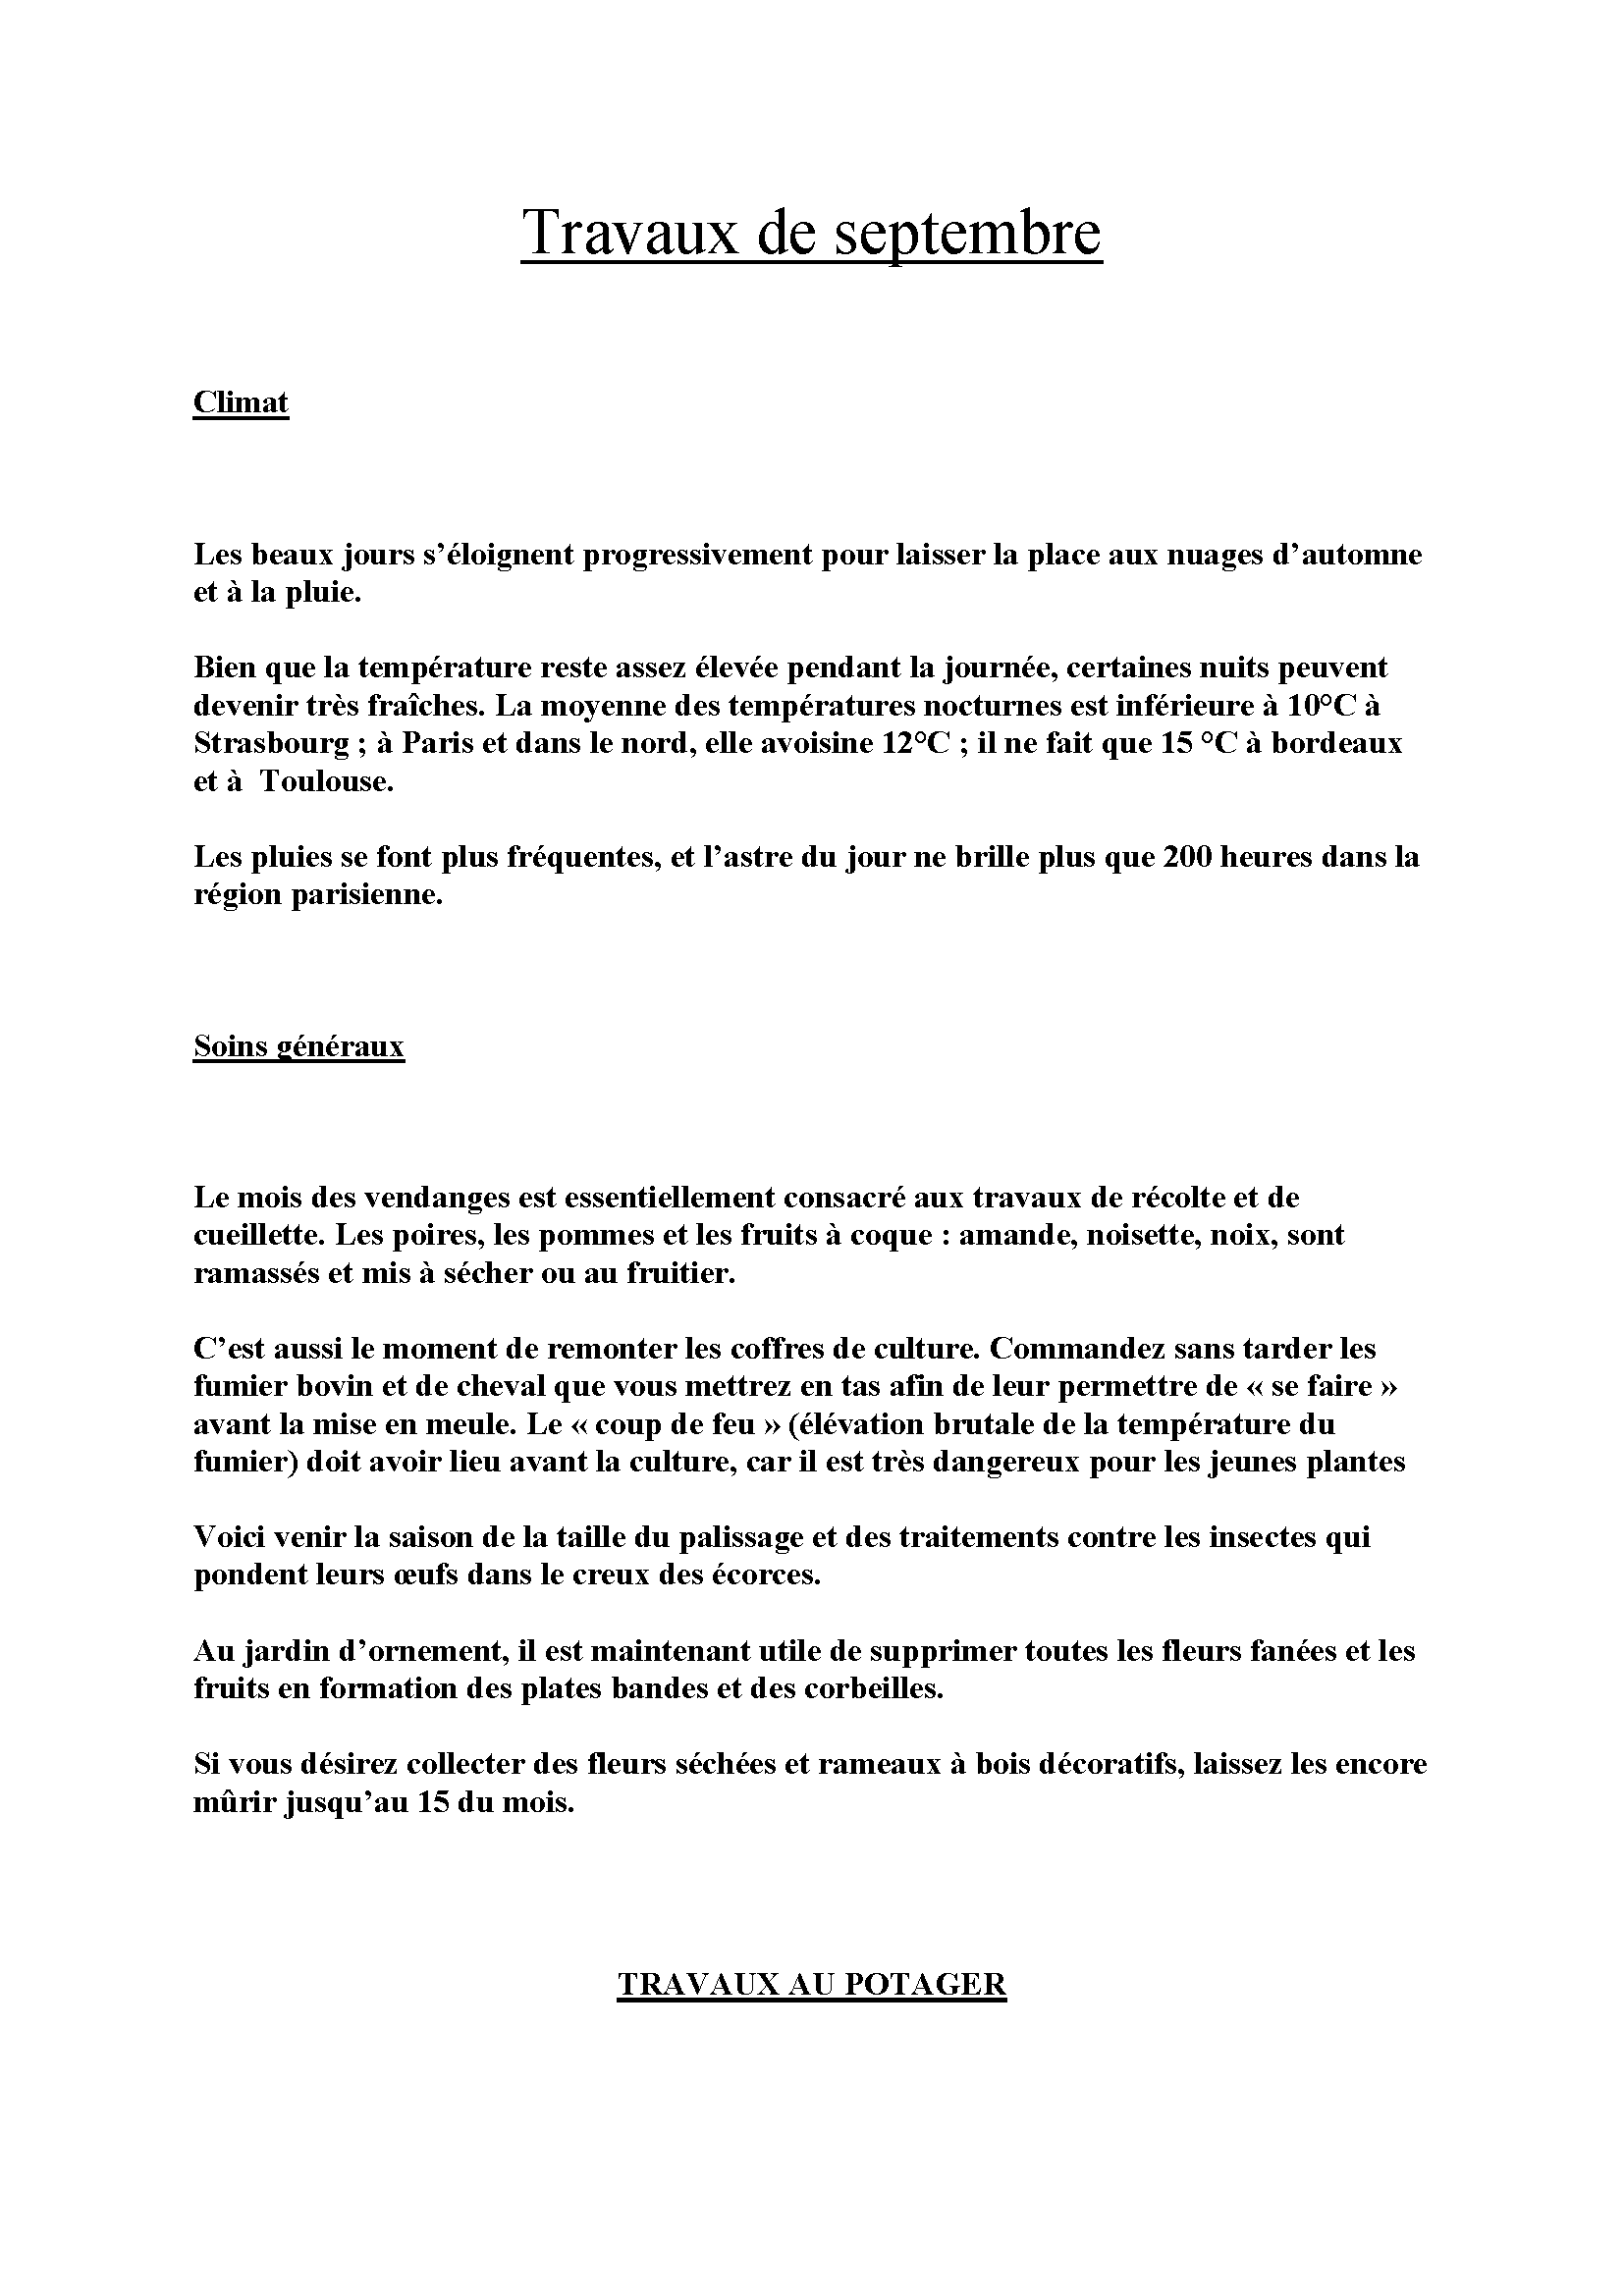 http://palife.free.fr/up/Travaux%20de%20septembre_Page_01.png